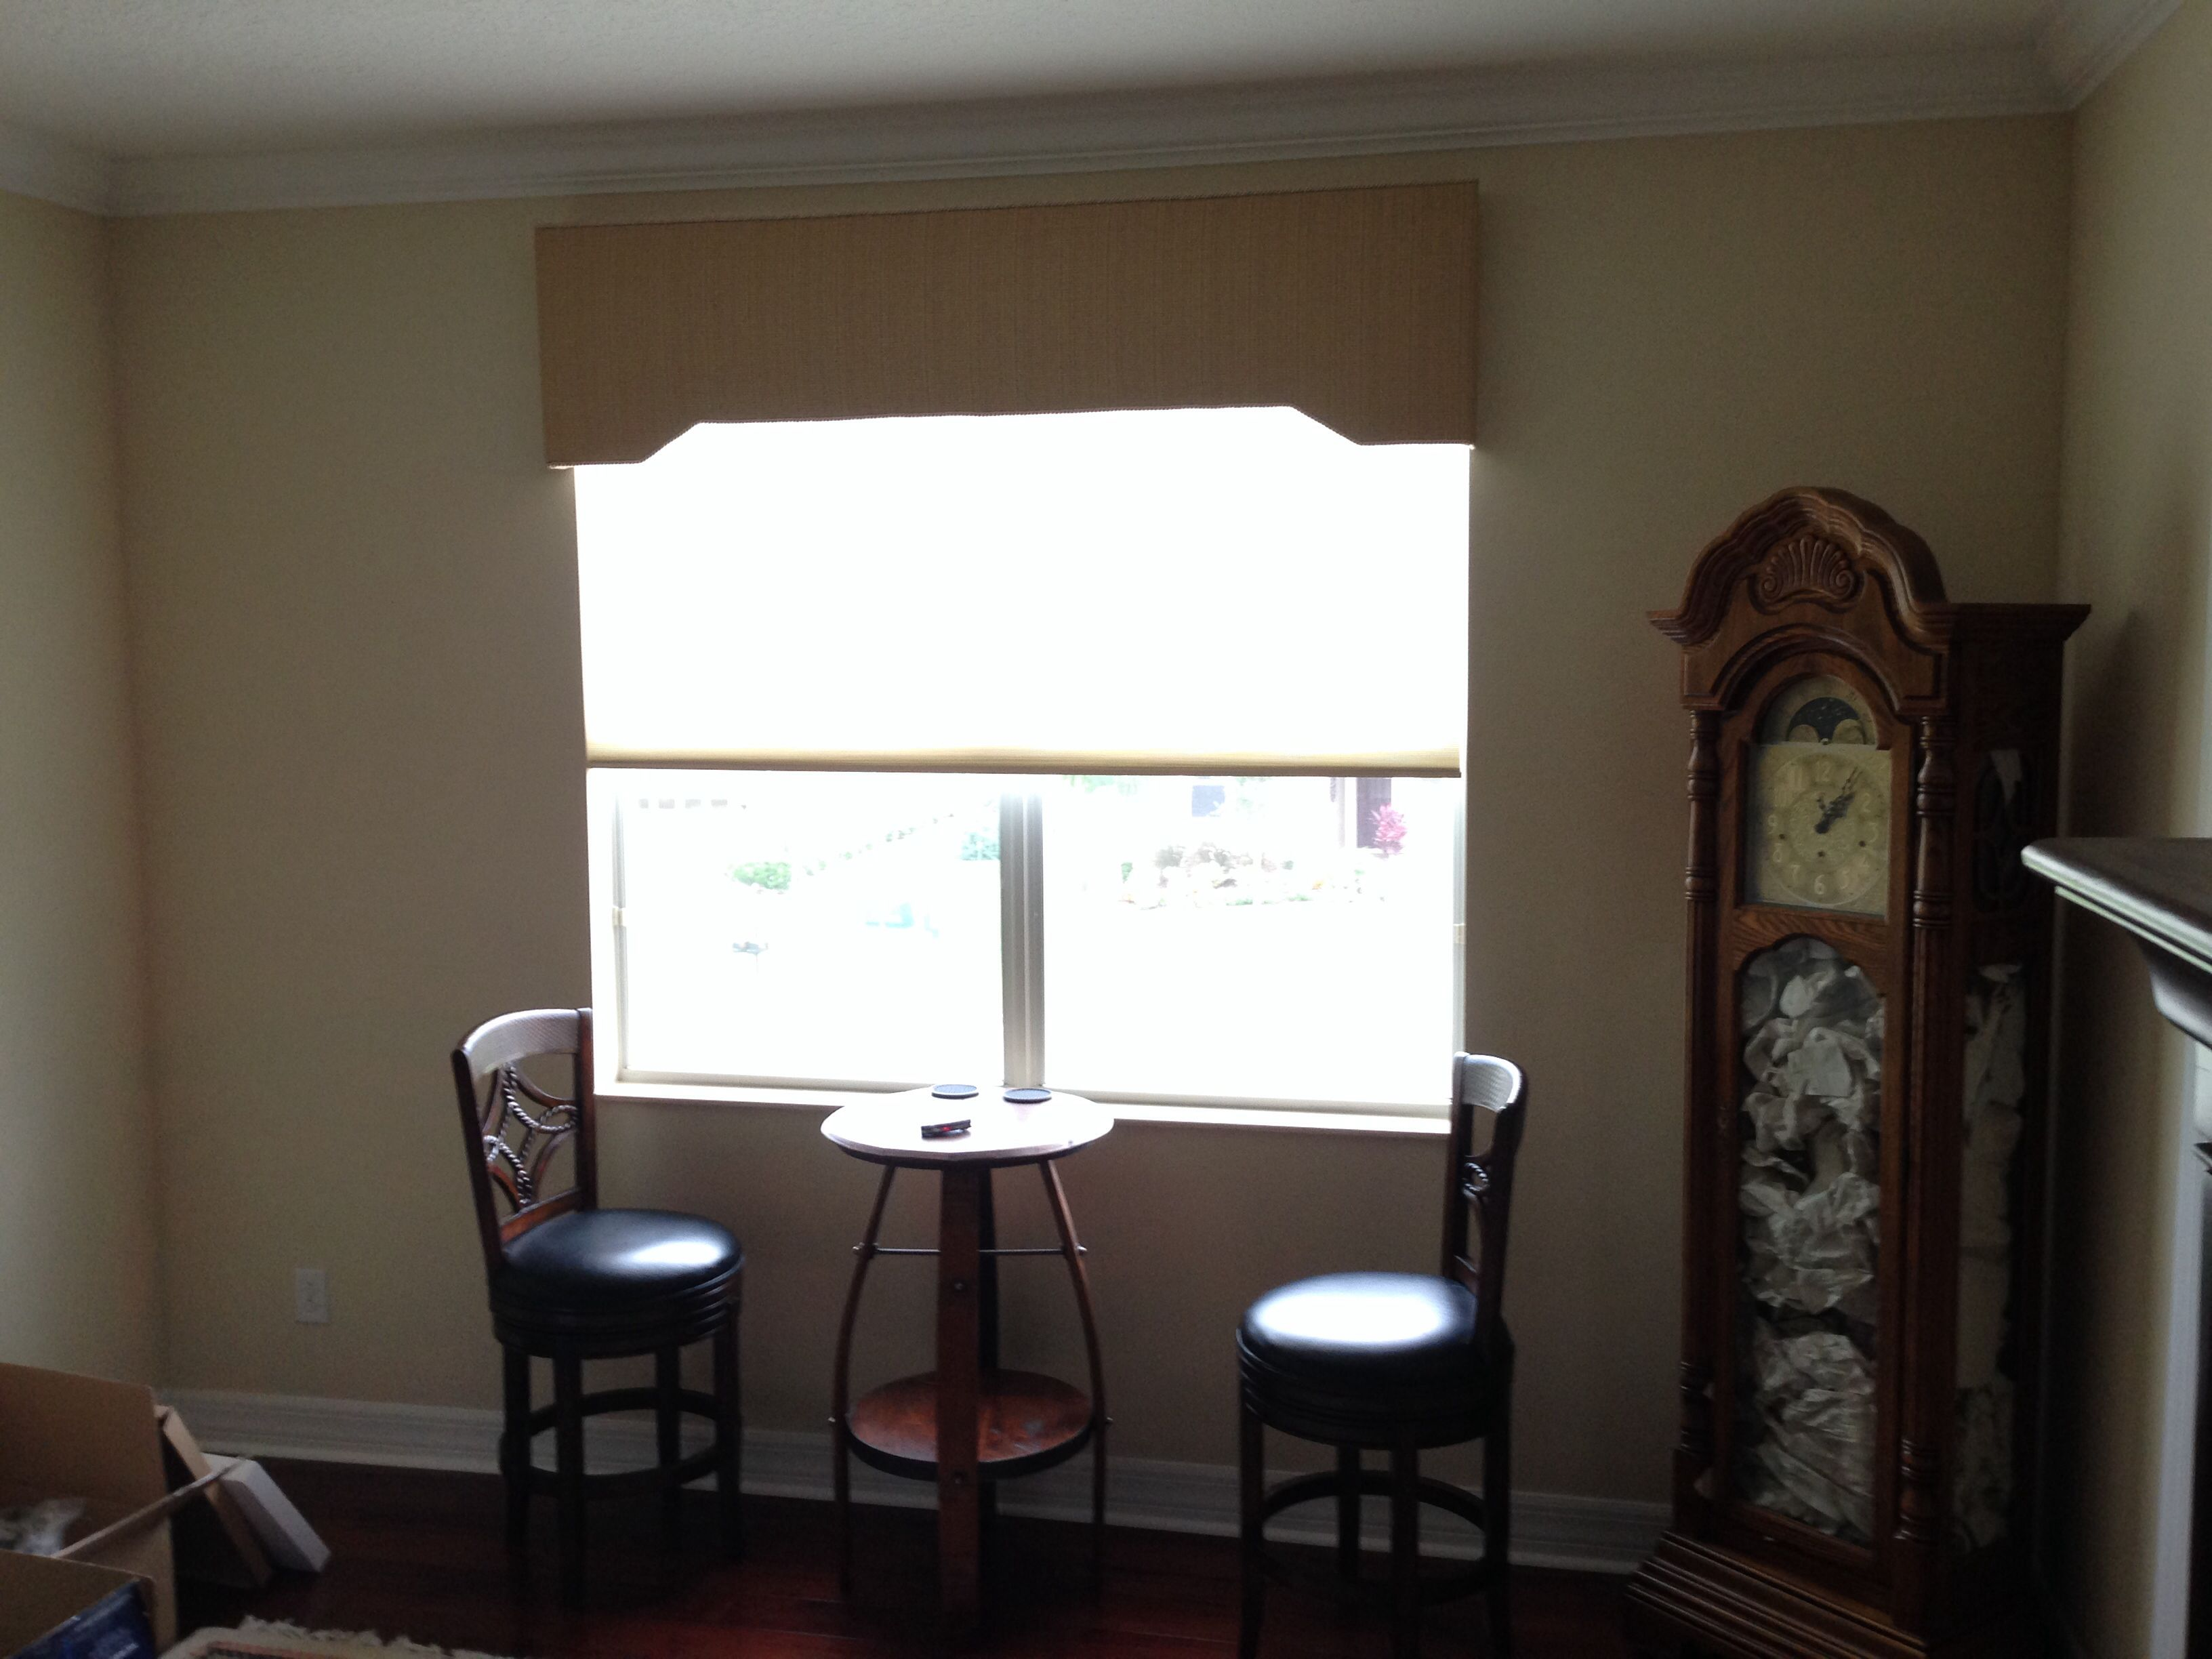 Custom Cornice Boards available at Budget Blinds of Clermont